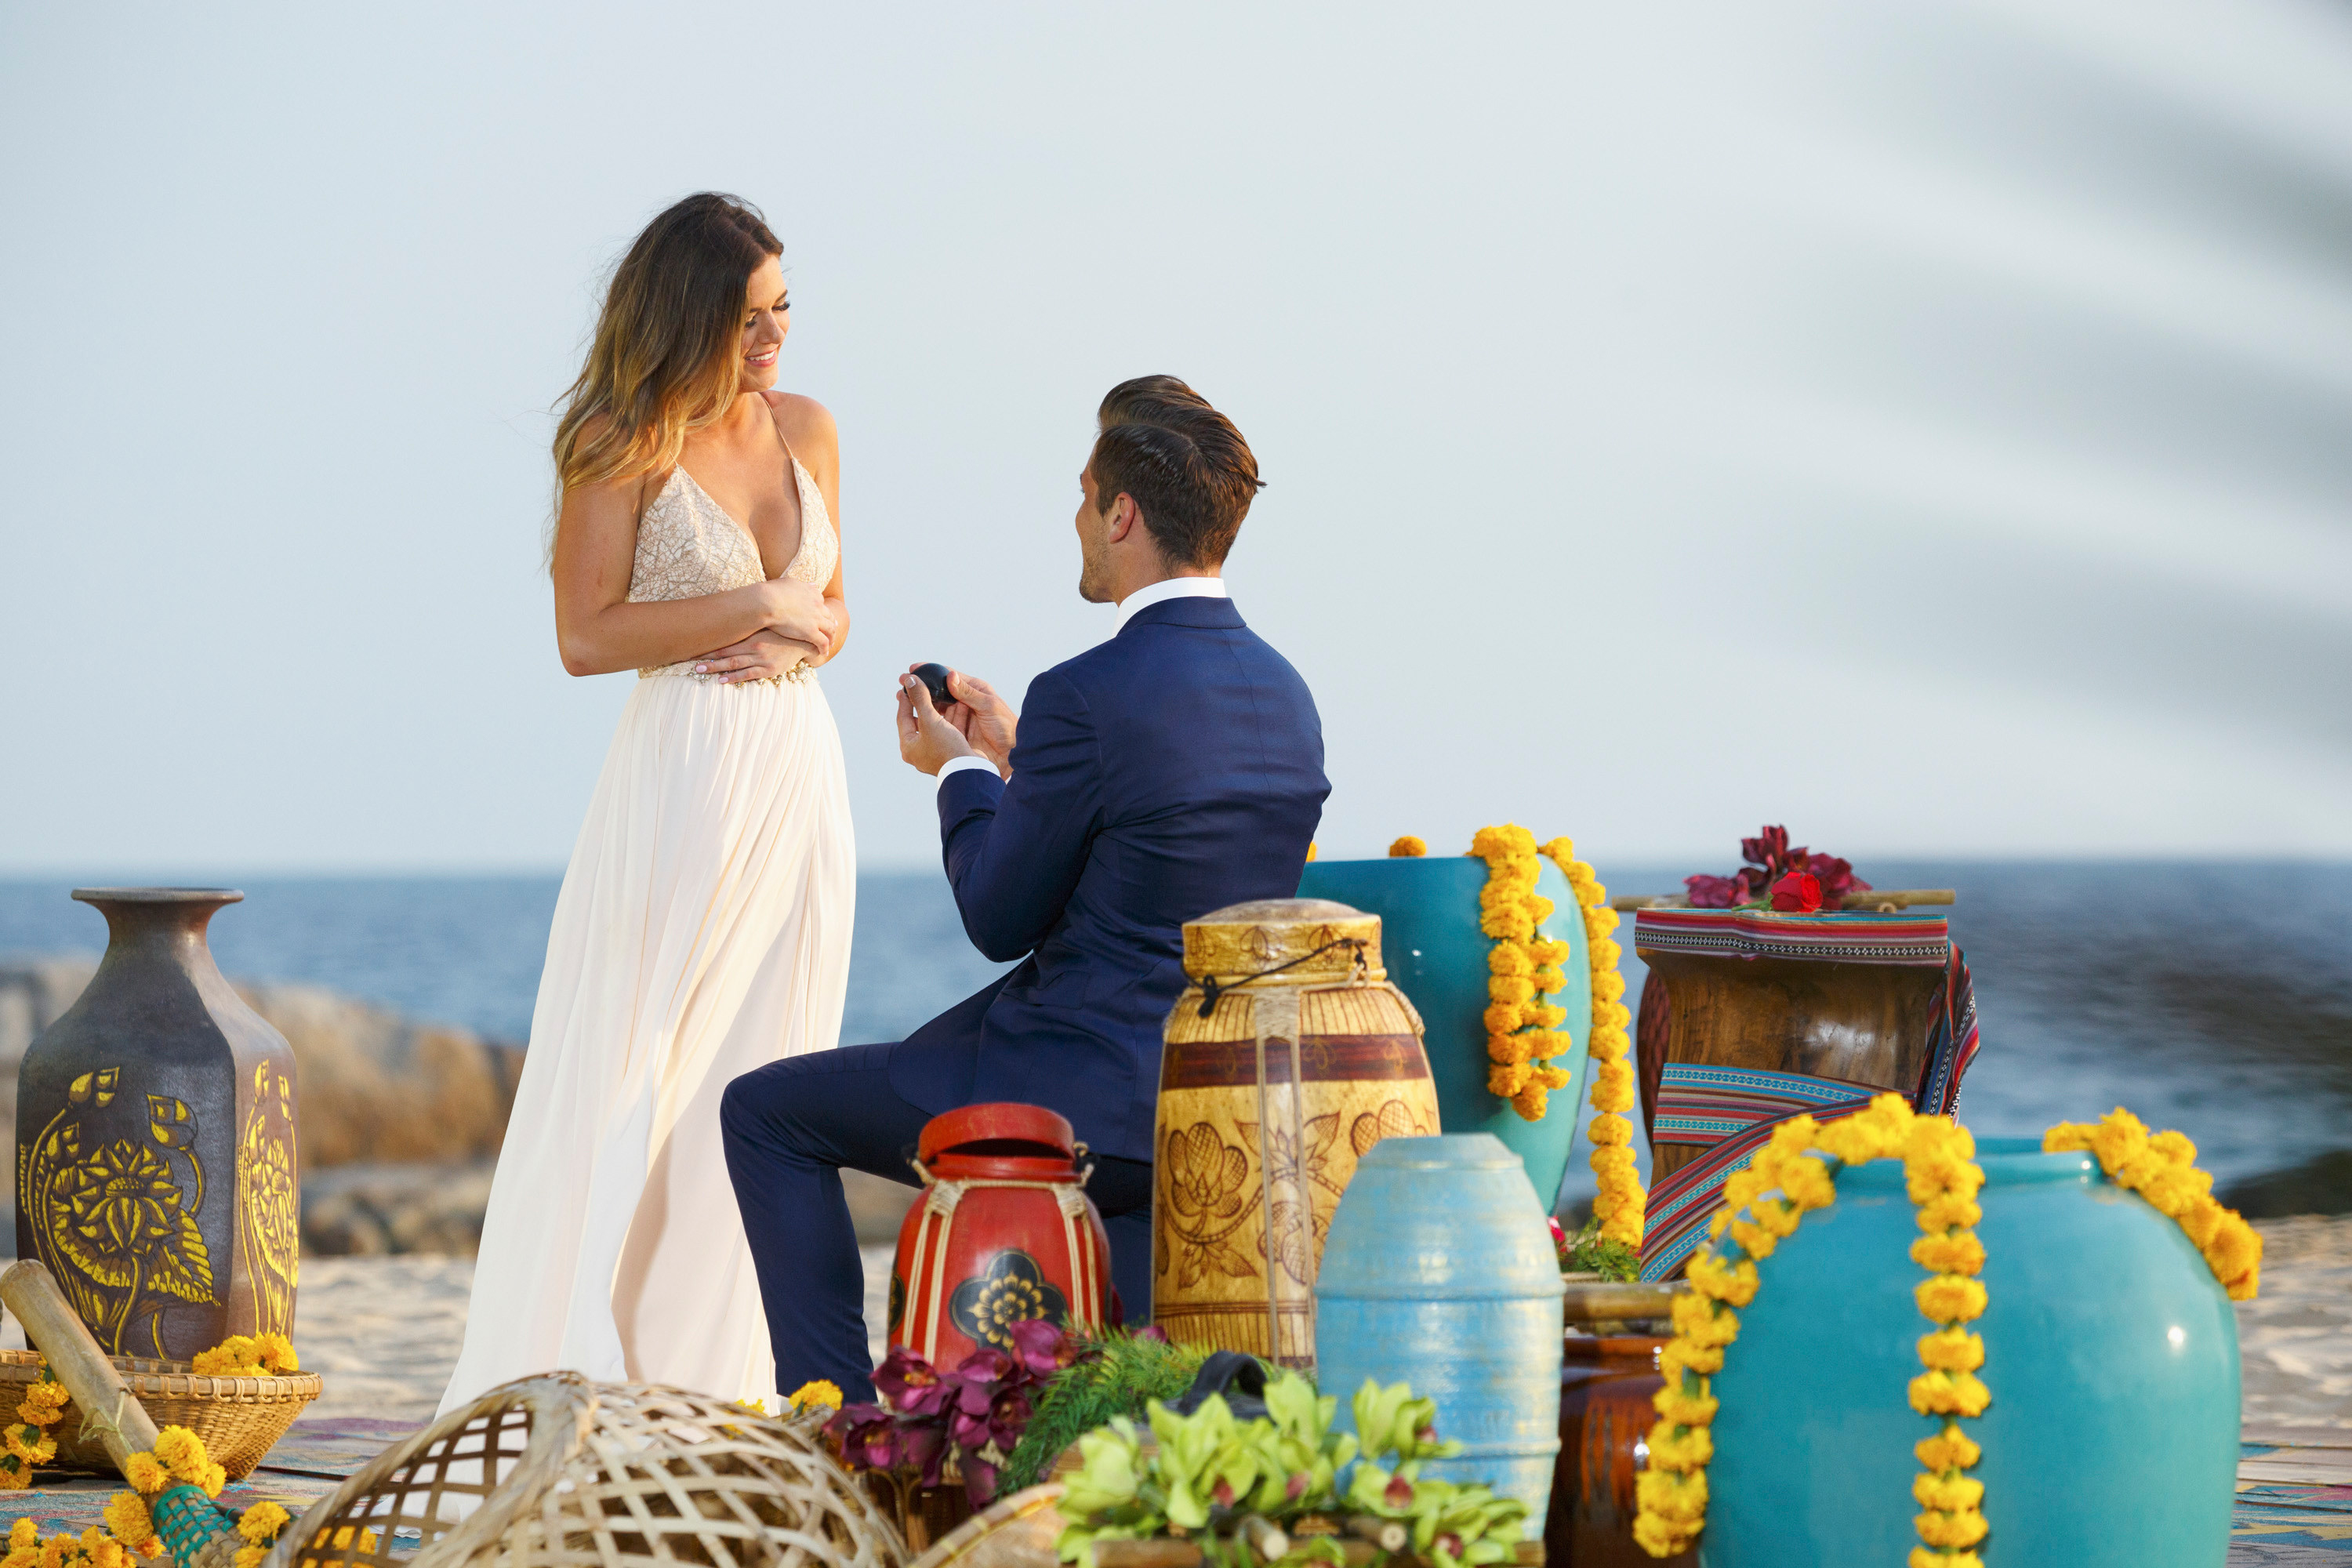 A contestant proposes to the Bachelorette